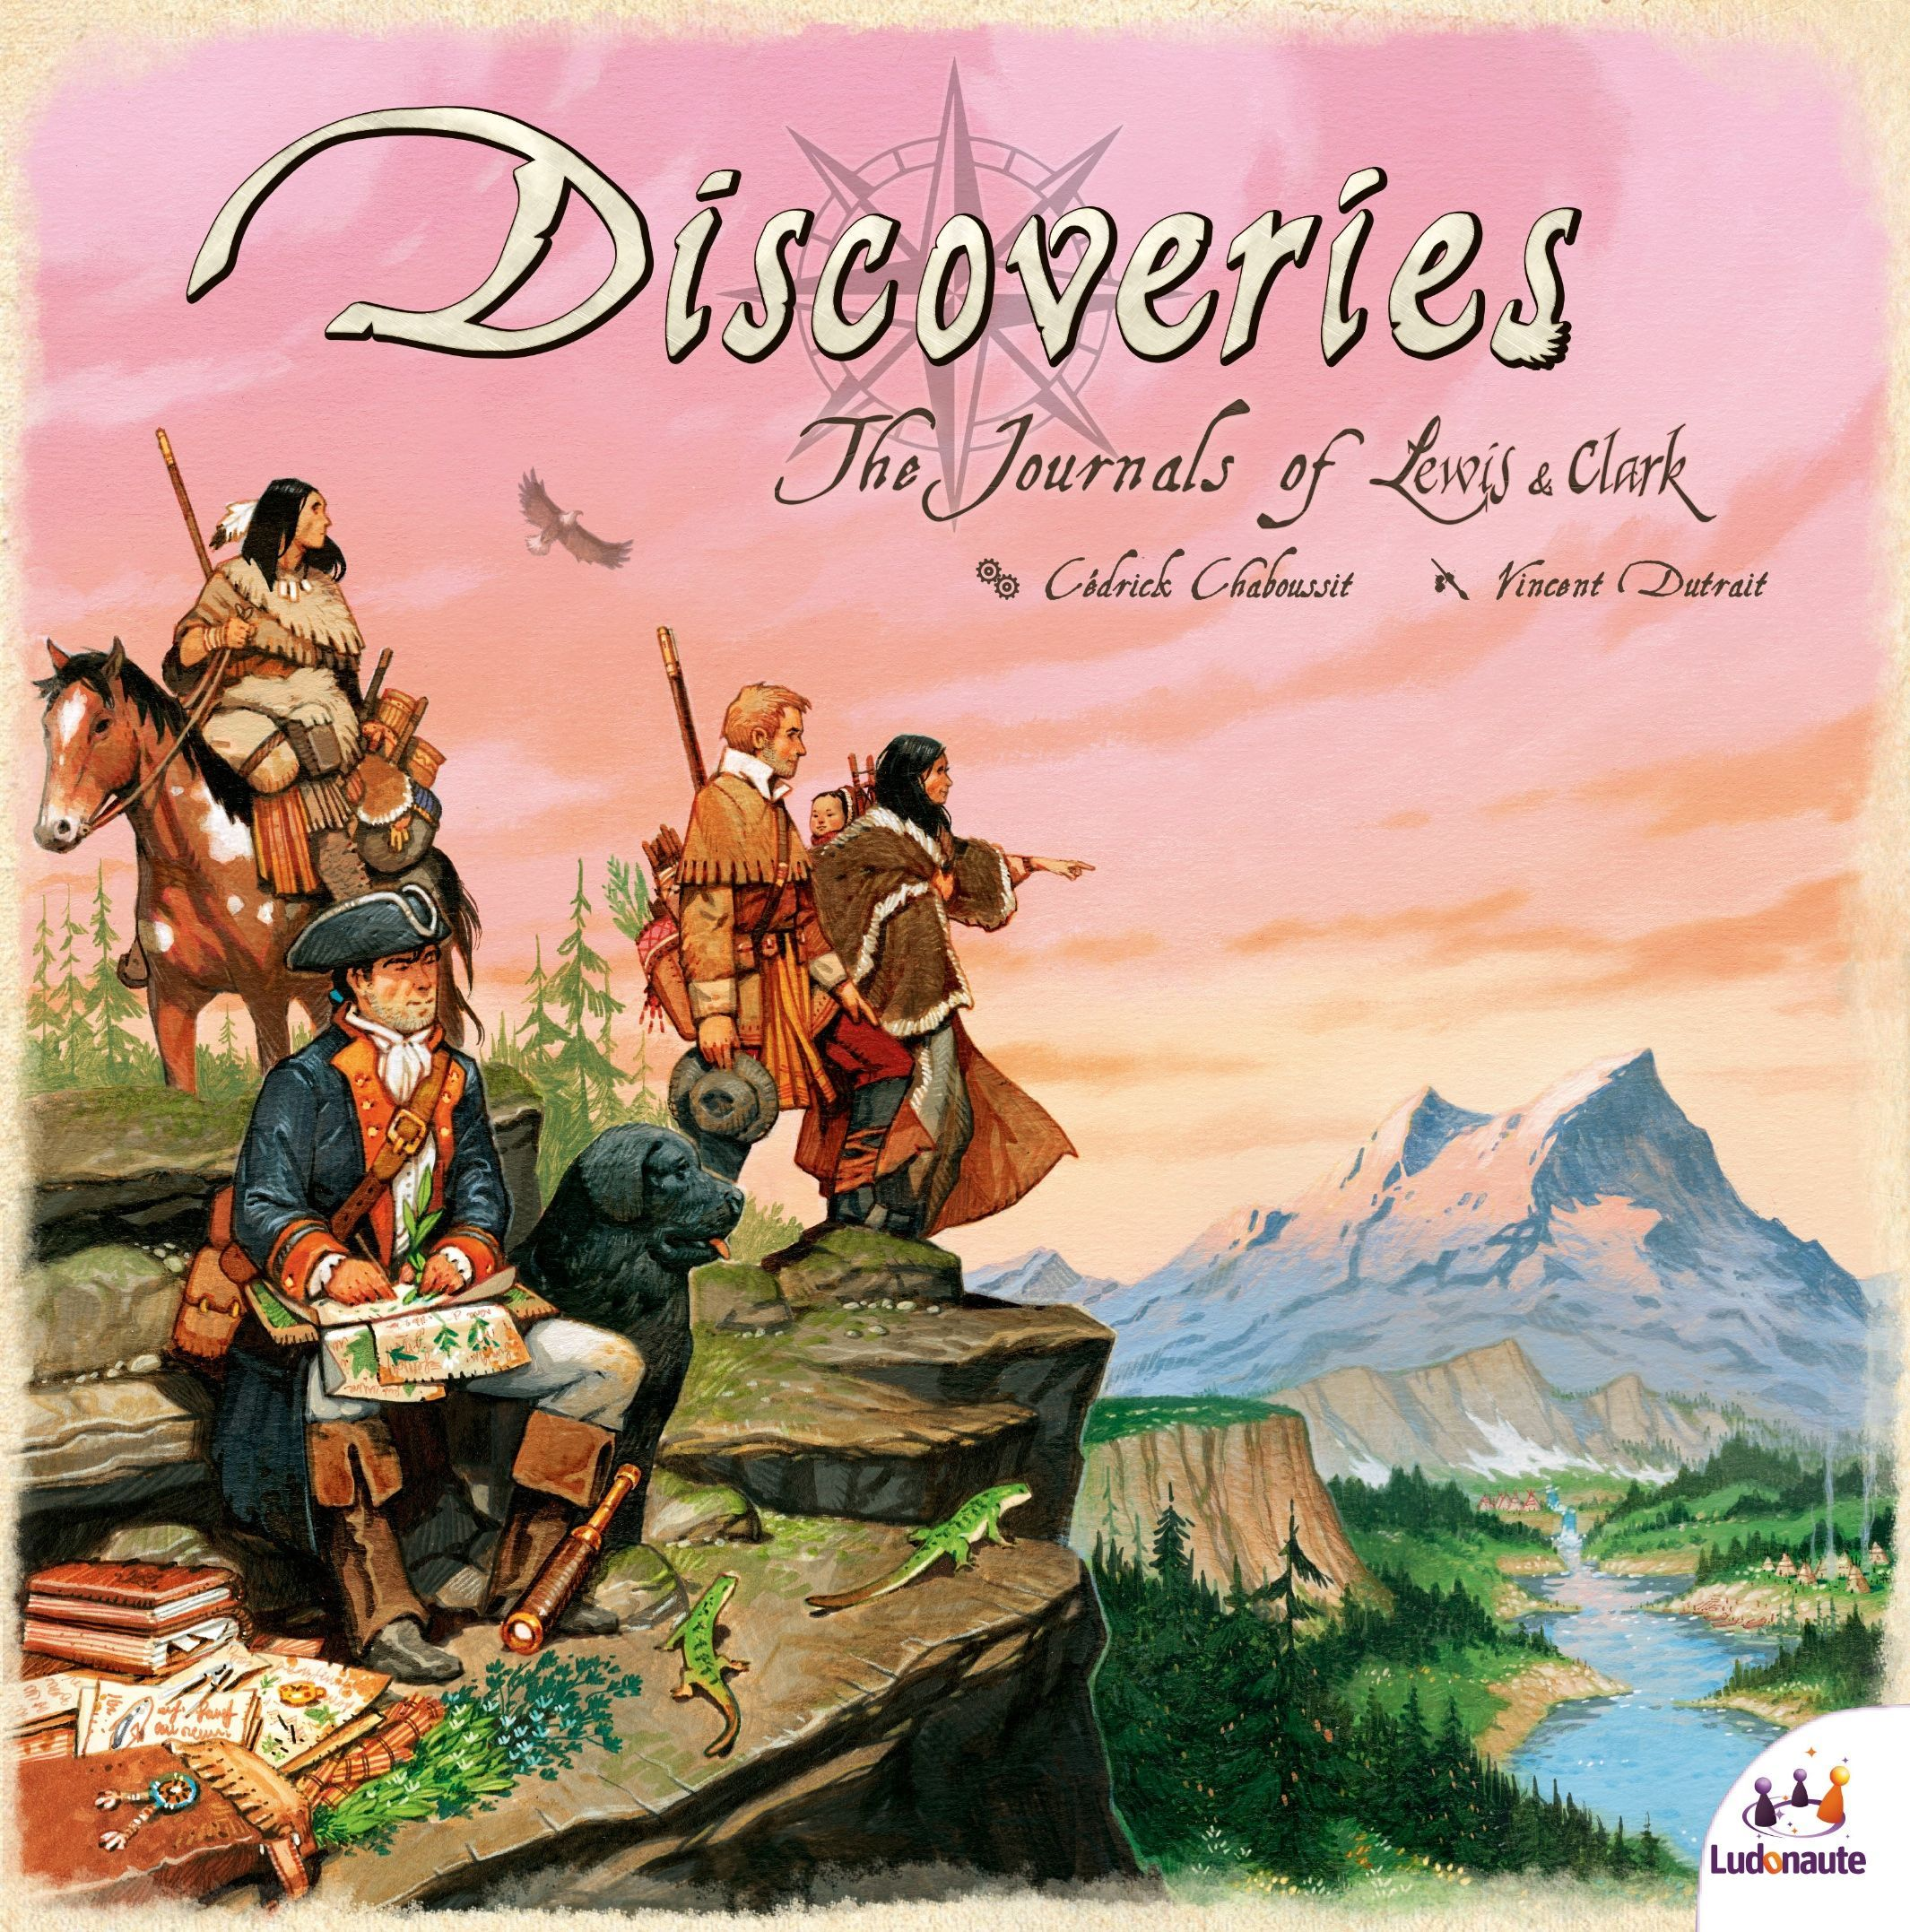 Discoveries: The Journals of Lewis and Clark